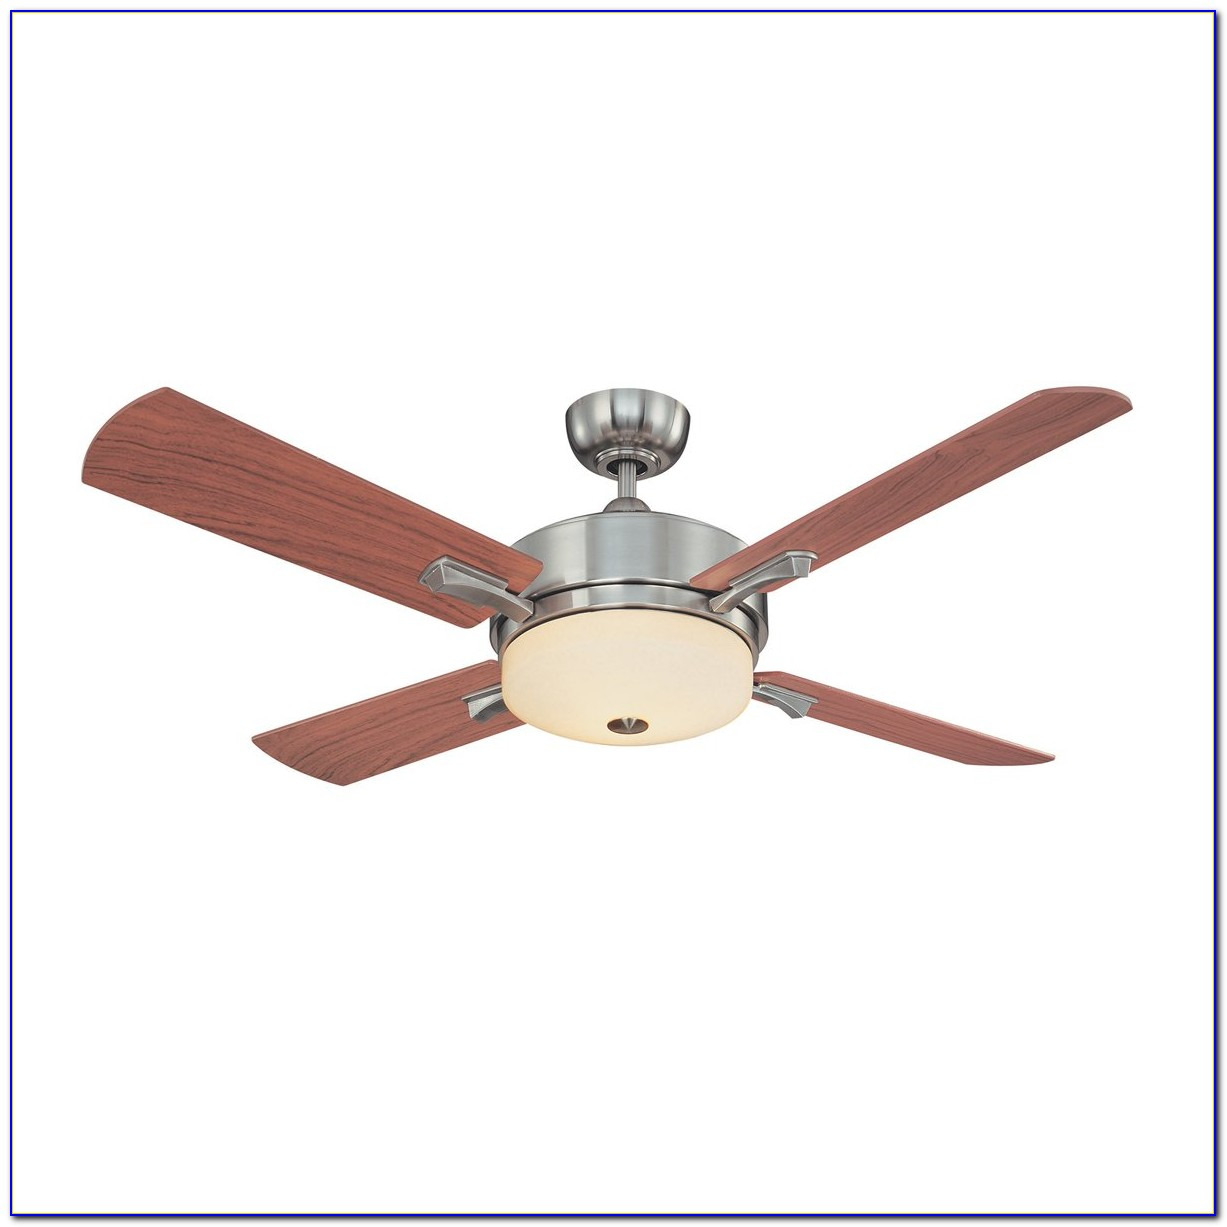 Canarm Industrial Ceiling Fan 56